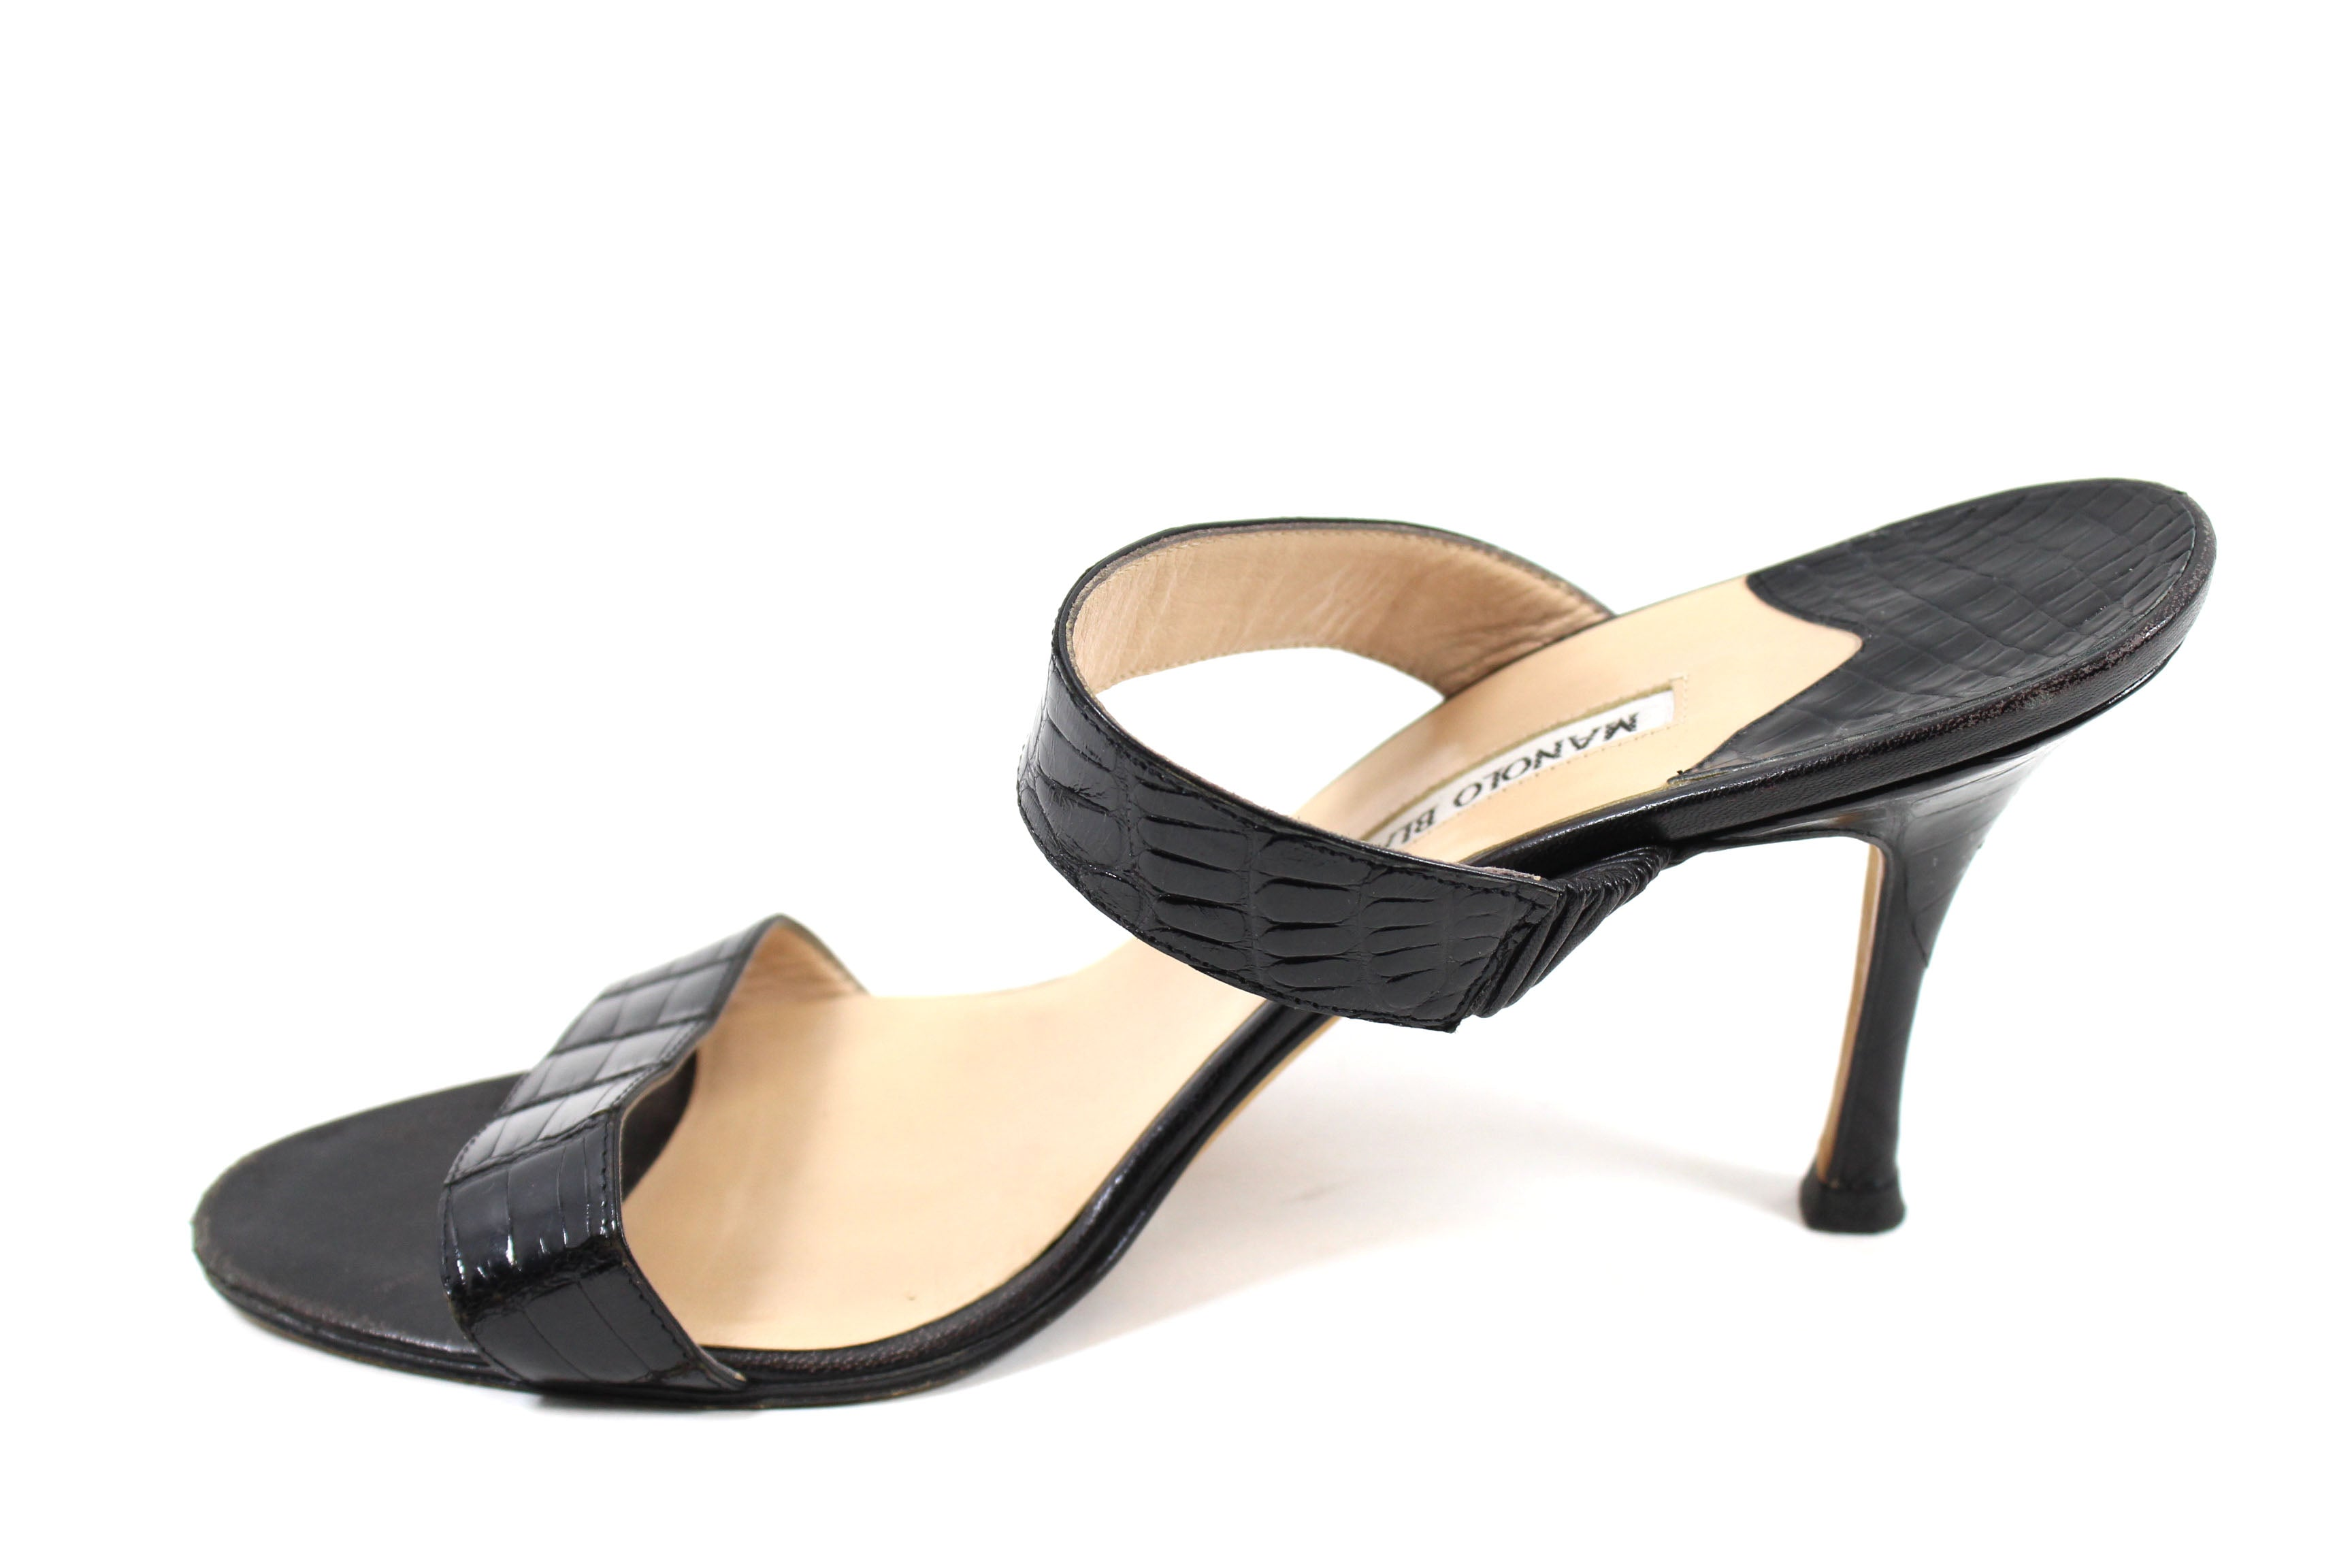 'Sold' Manolo Blahnik Black Crocodile Dual Strap Sandals (Size 40.5)